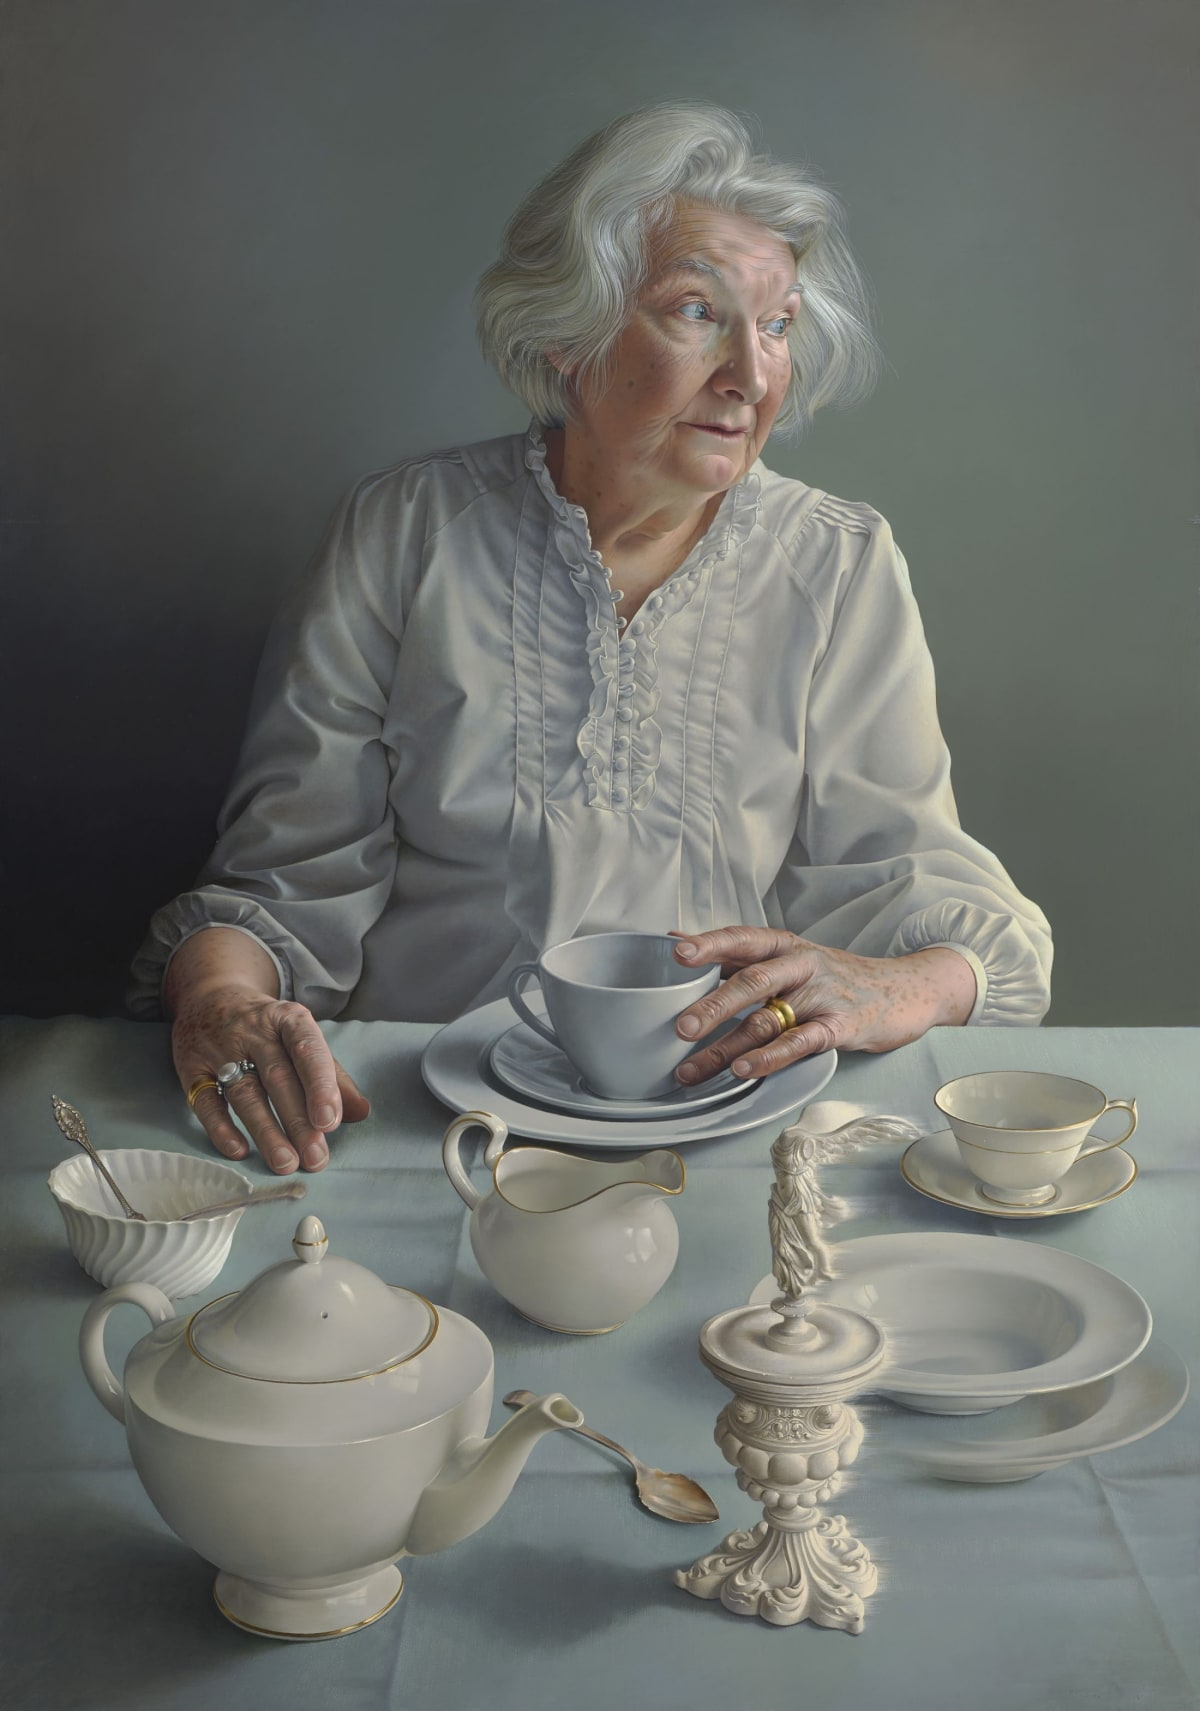 Miriam Escofet wins BP Portrait Award 2018